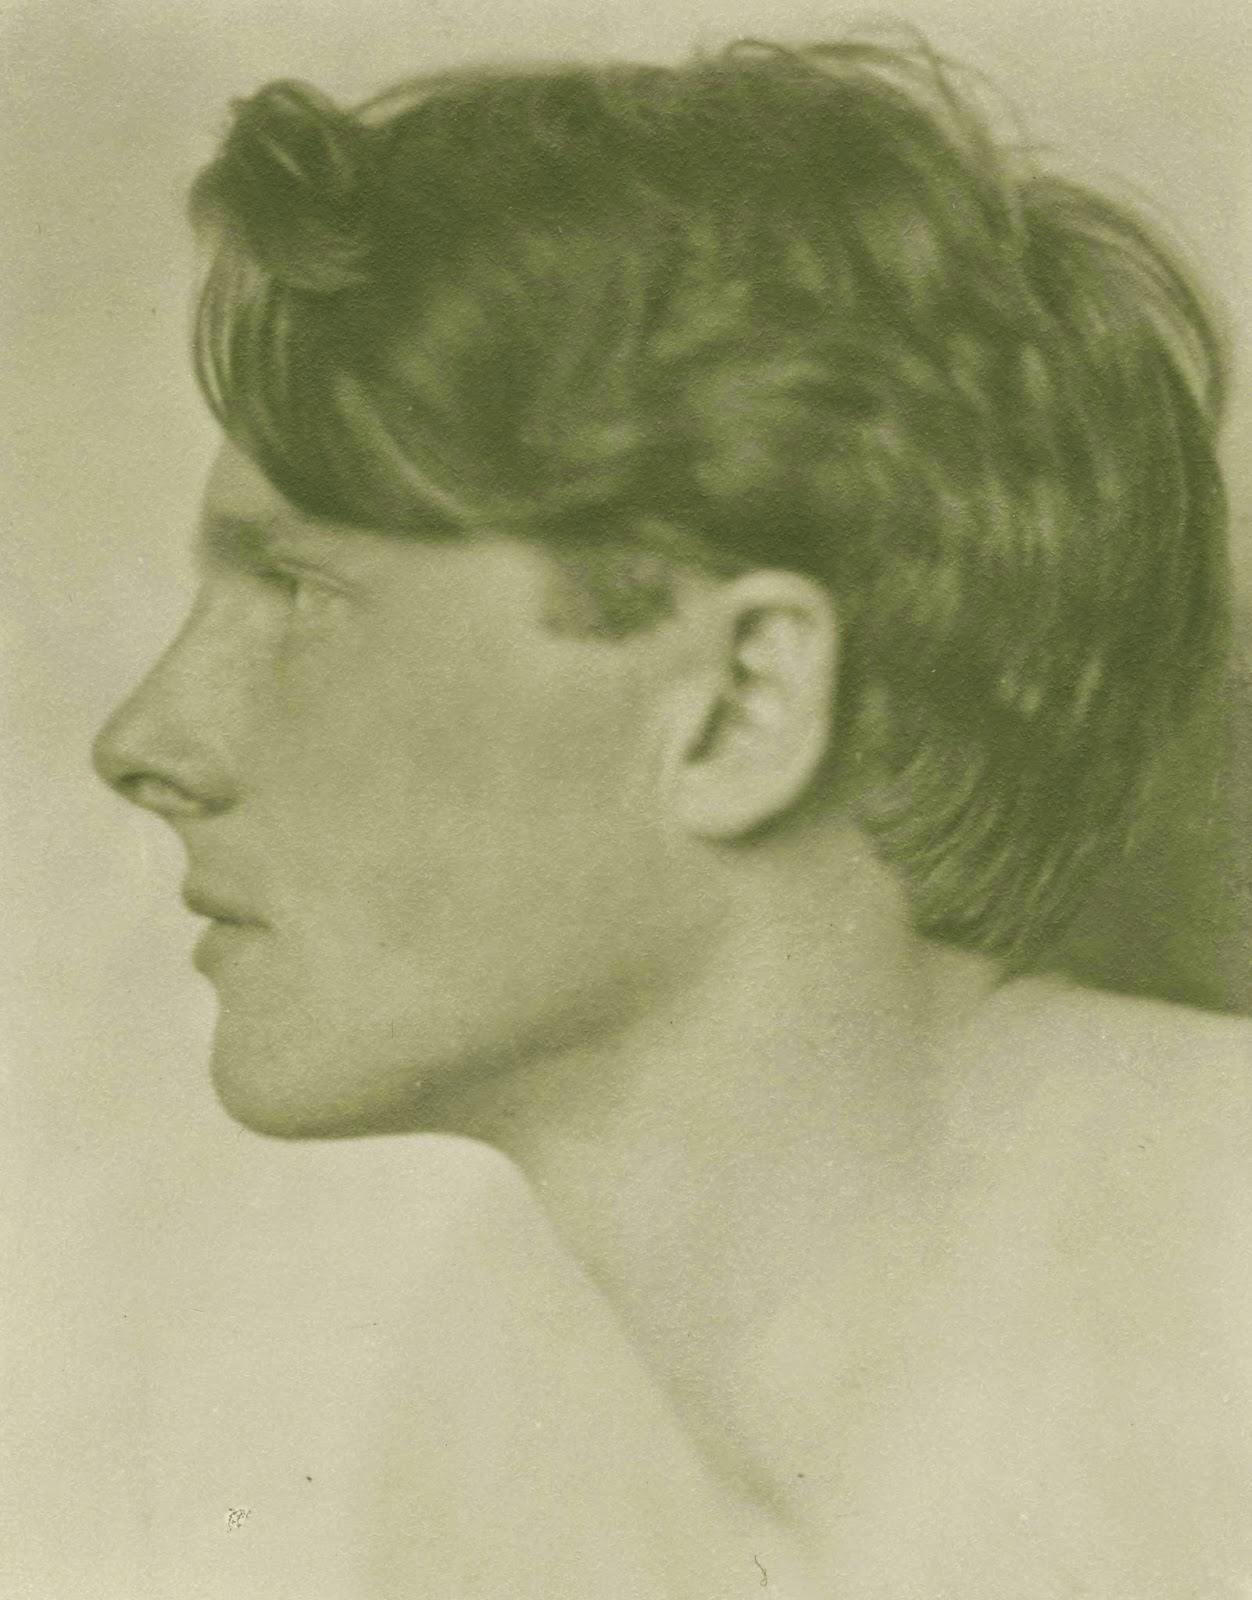 A photograph in profile of Rupert Brooke.